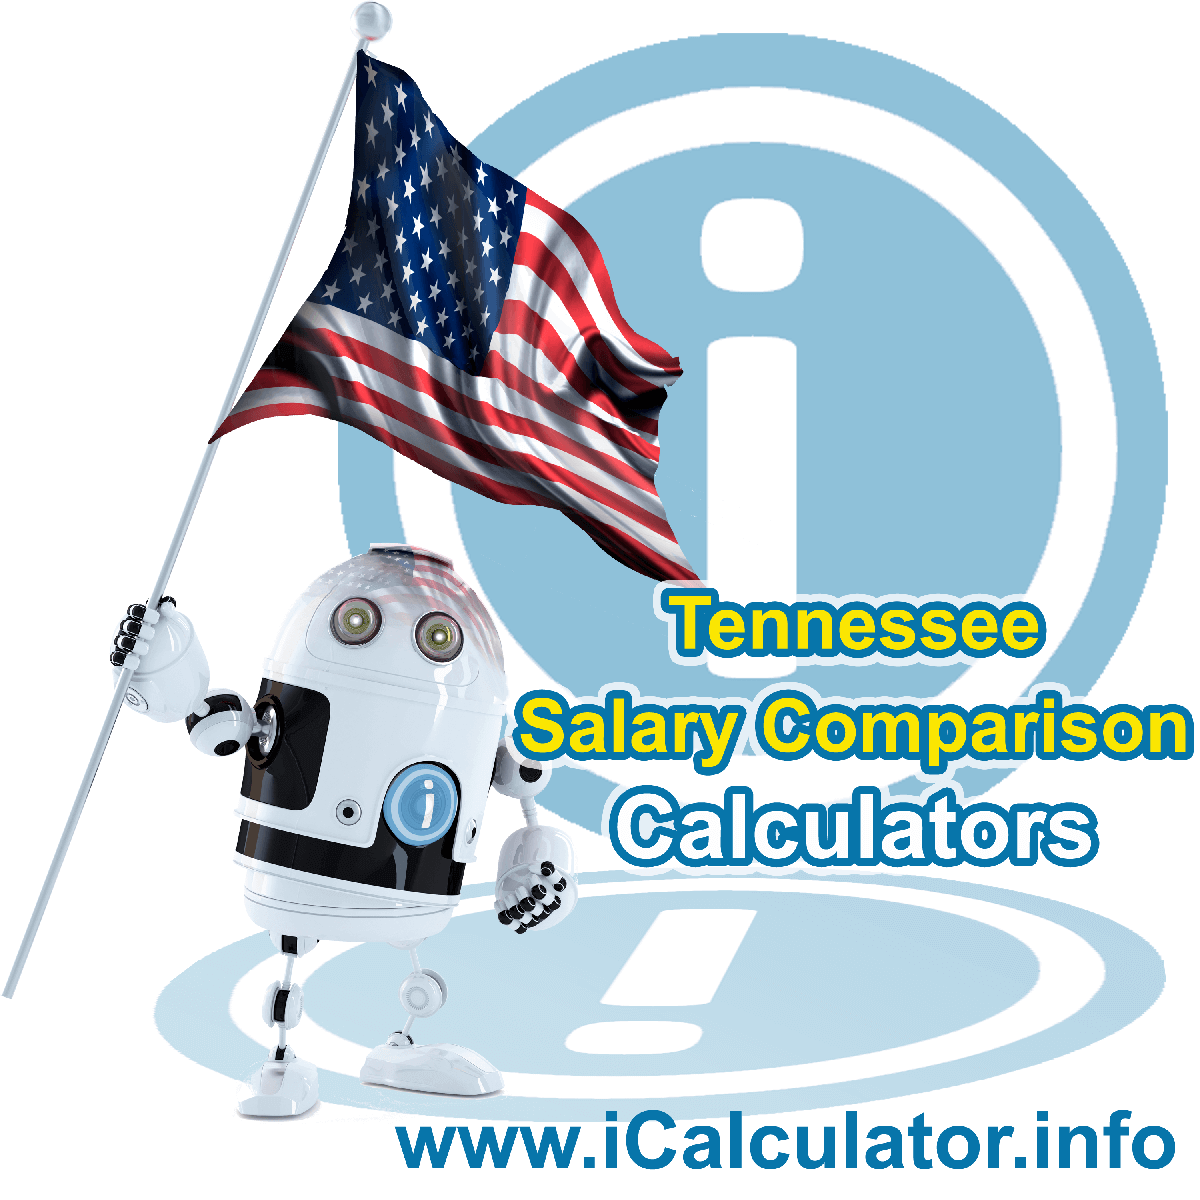 Tennessee Salary Comparison Calculator 2021 | iCalculator | The Tennessee Salary Comparison Calculator allows you to quickly calculate and compare upto 6 salaries in Tennessee or between other states for the 2021 tax year and historical tax years. Its an excellent tool for jobseekers, pay raise comparison and comparison of salaries between different US States